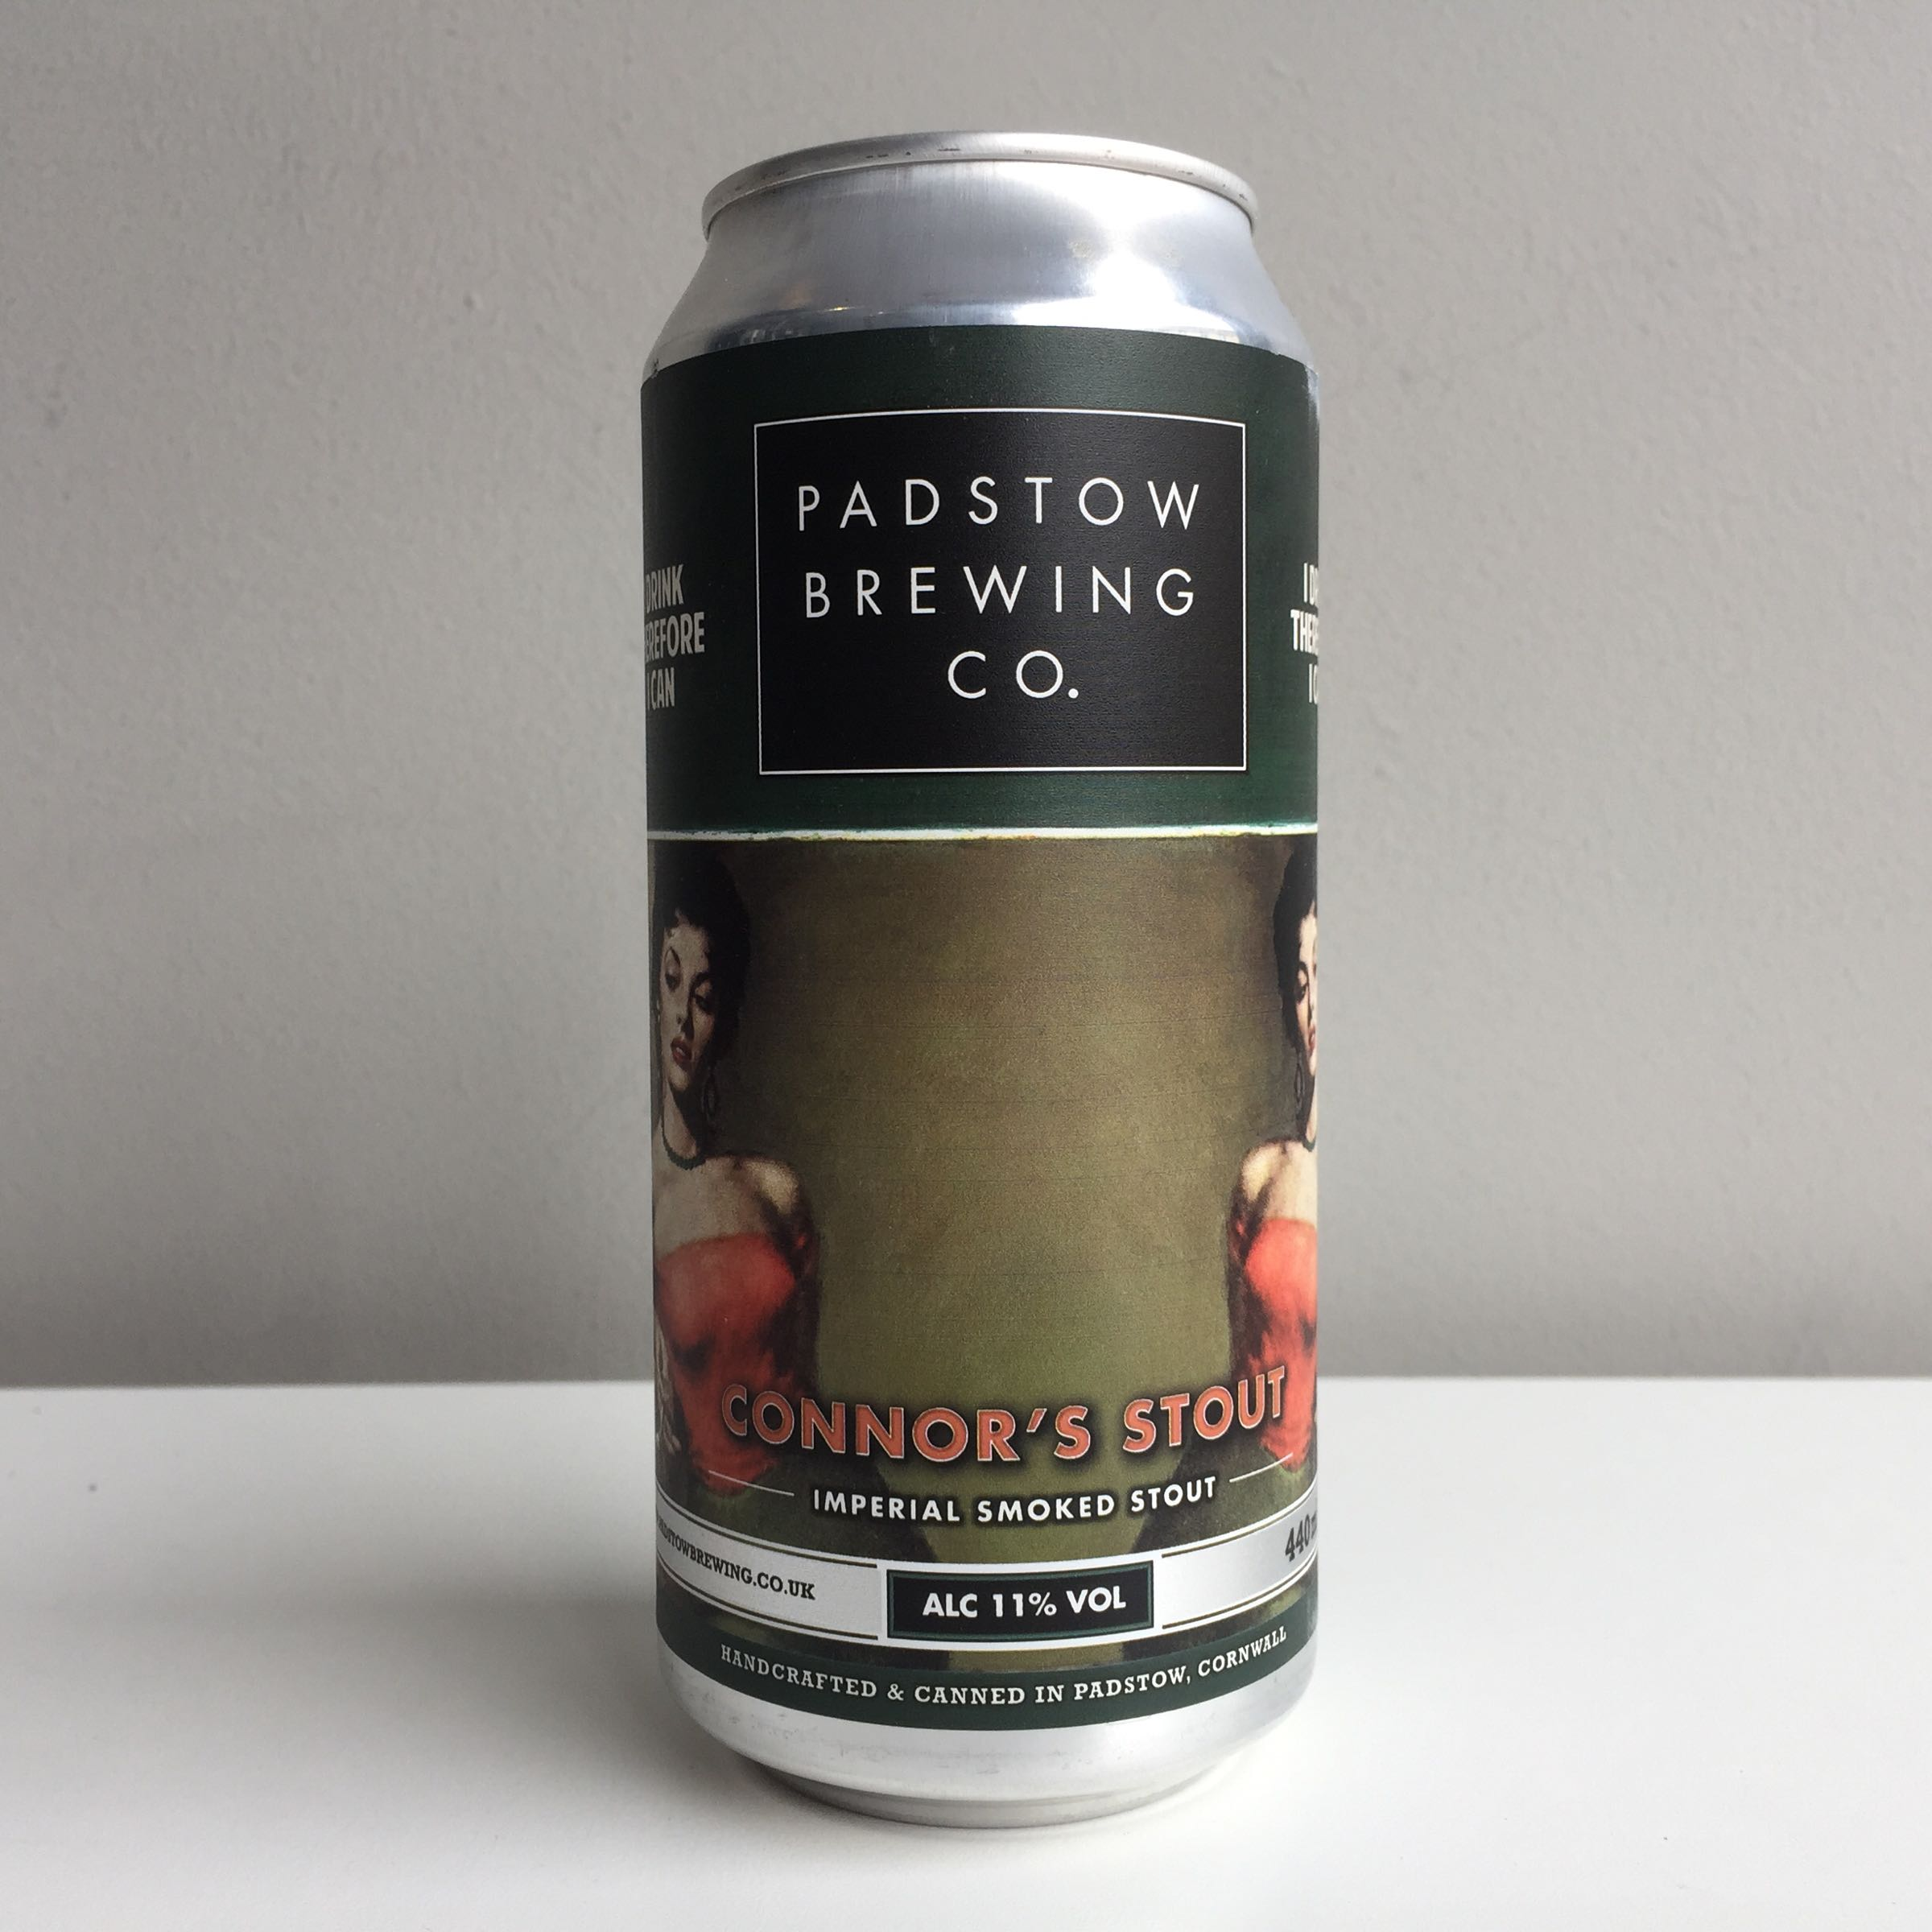 Padstow Brewing Co. 'Connor's Stout' Imperial Smoked Stout 44oml 11% ABV